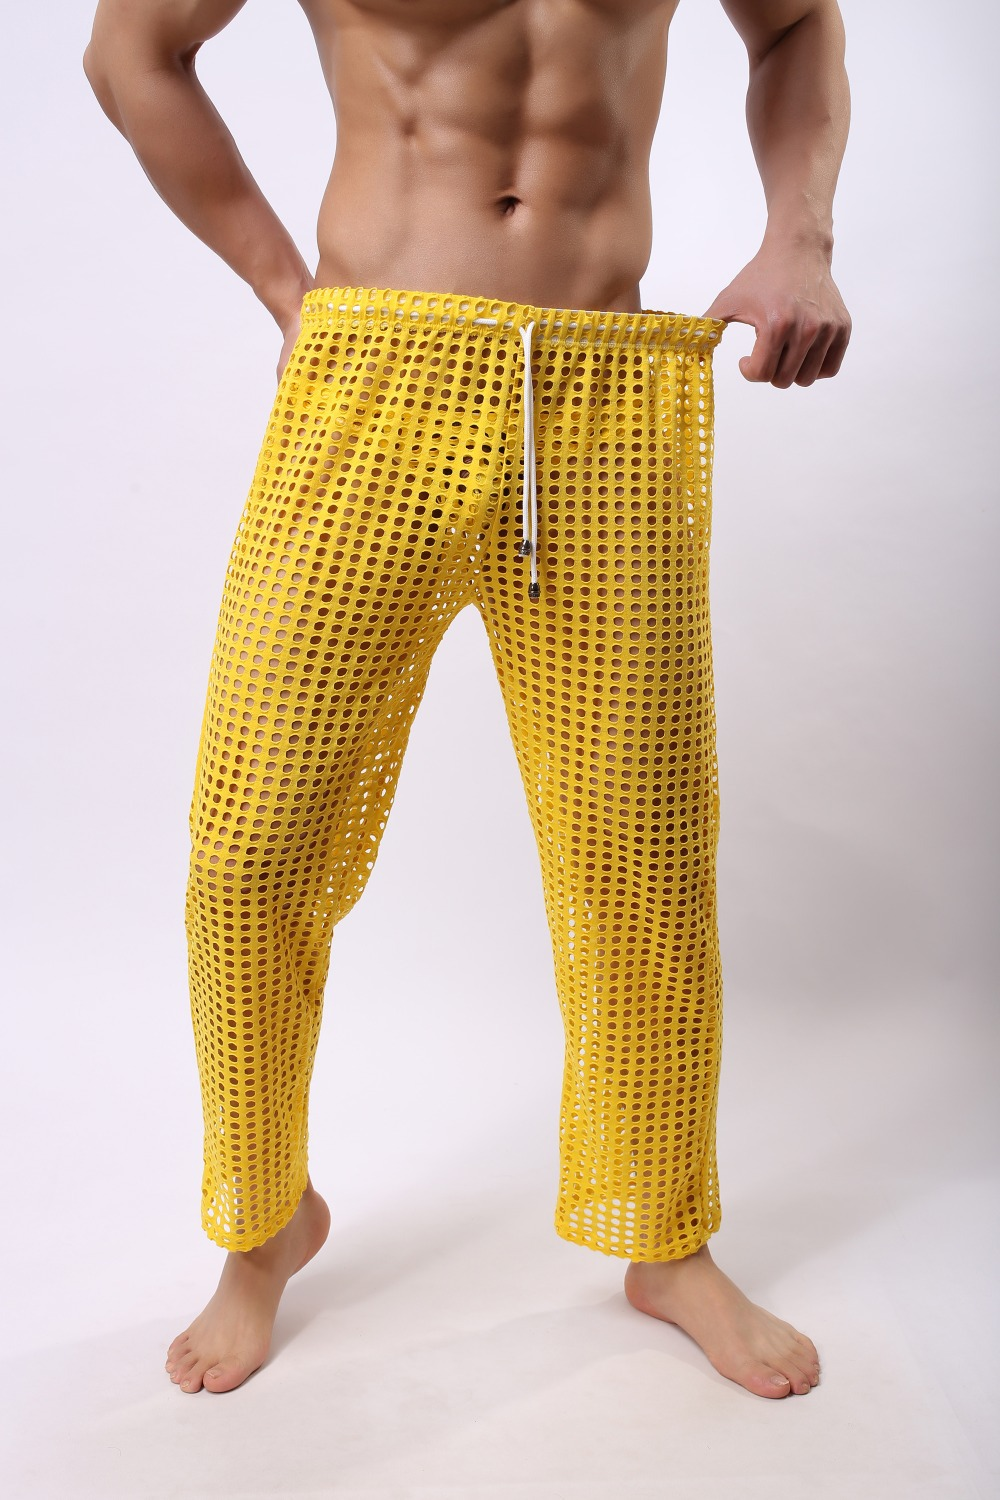 sexy Faux Leather openwork mesh long men pants long trousers Black red white yellow green,sexy men transparent men underwear(China (Mainland))